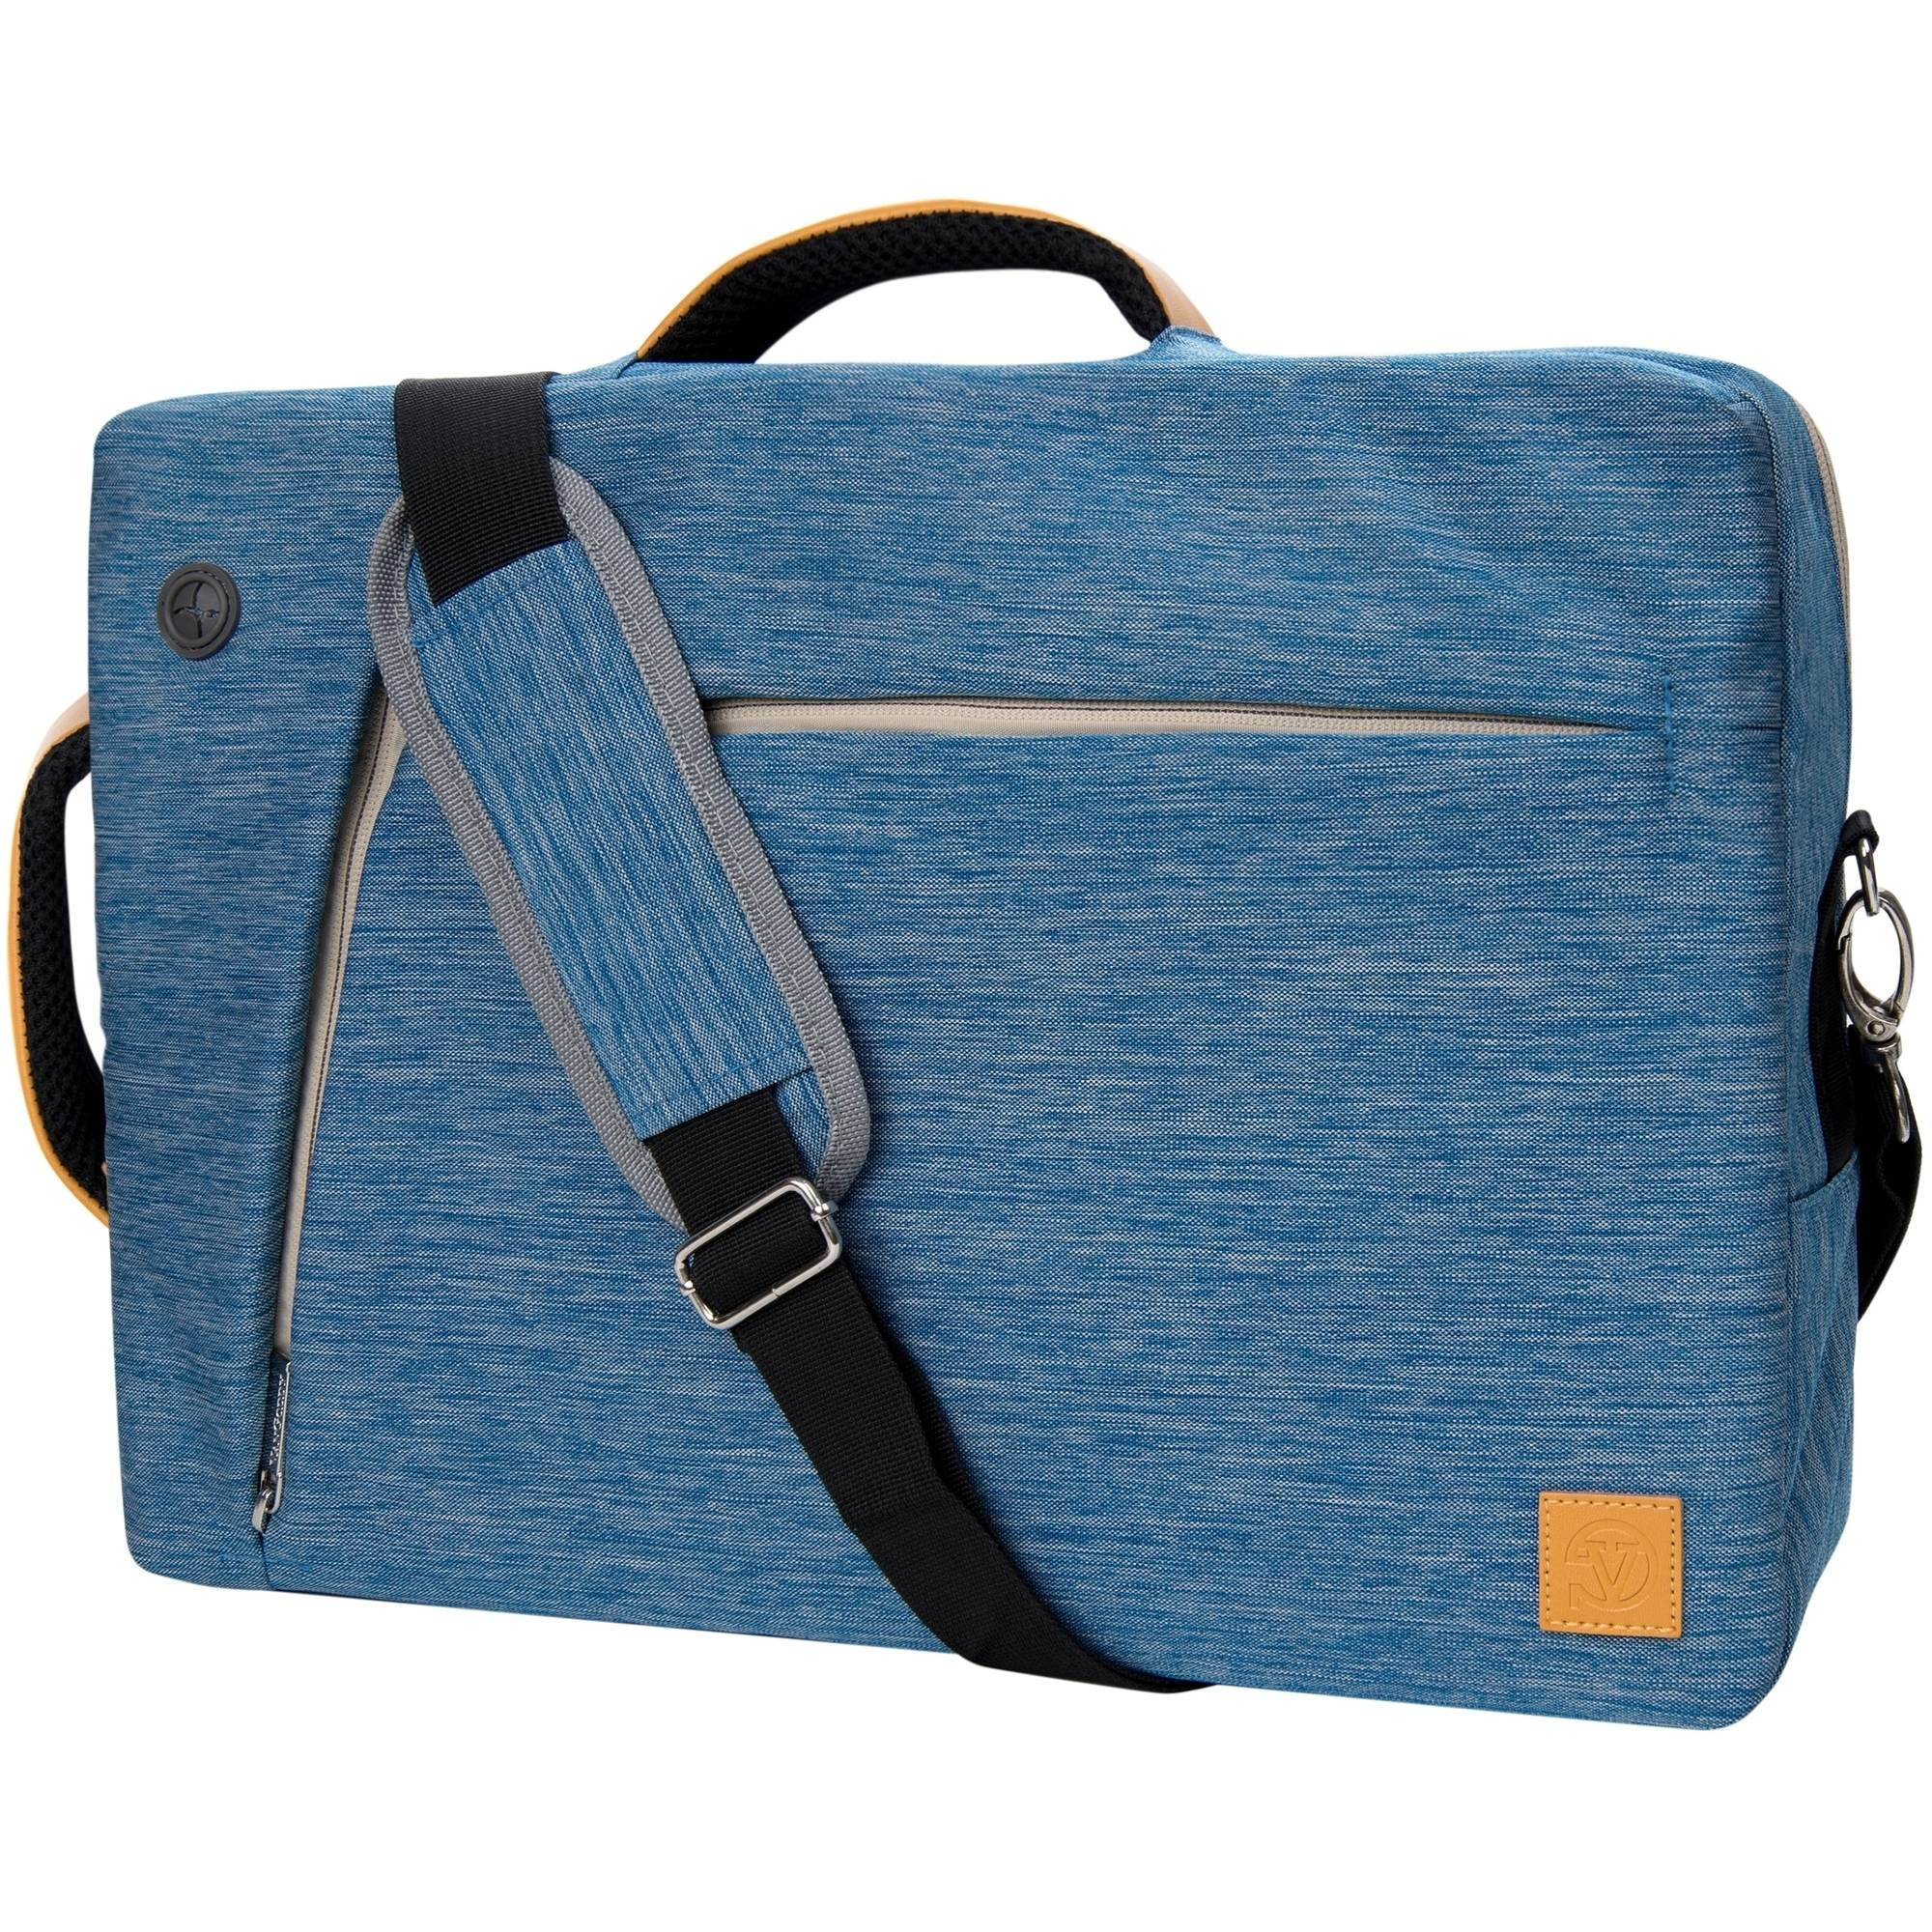 "Vangoddy Slate Carrying Laptop/Laptop Bag fits up to 15.6"" Devices"